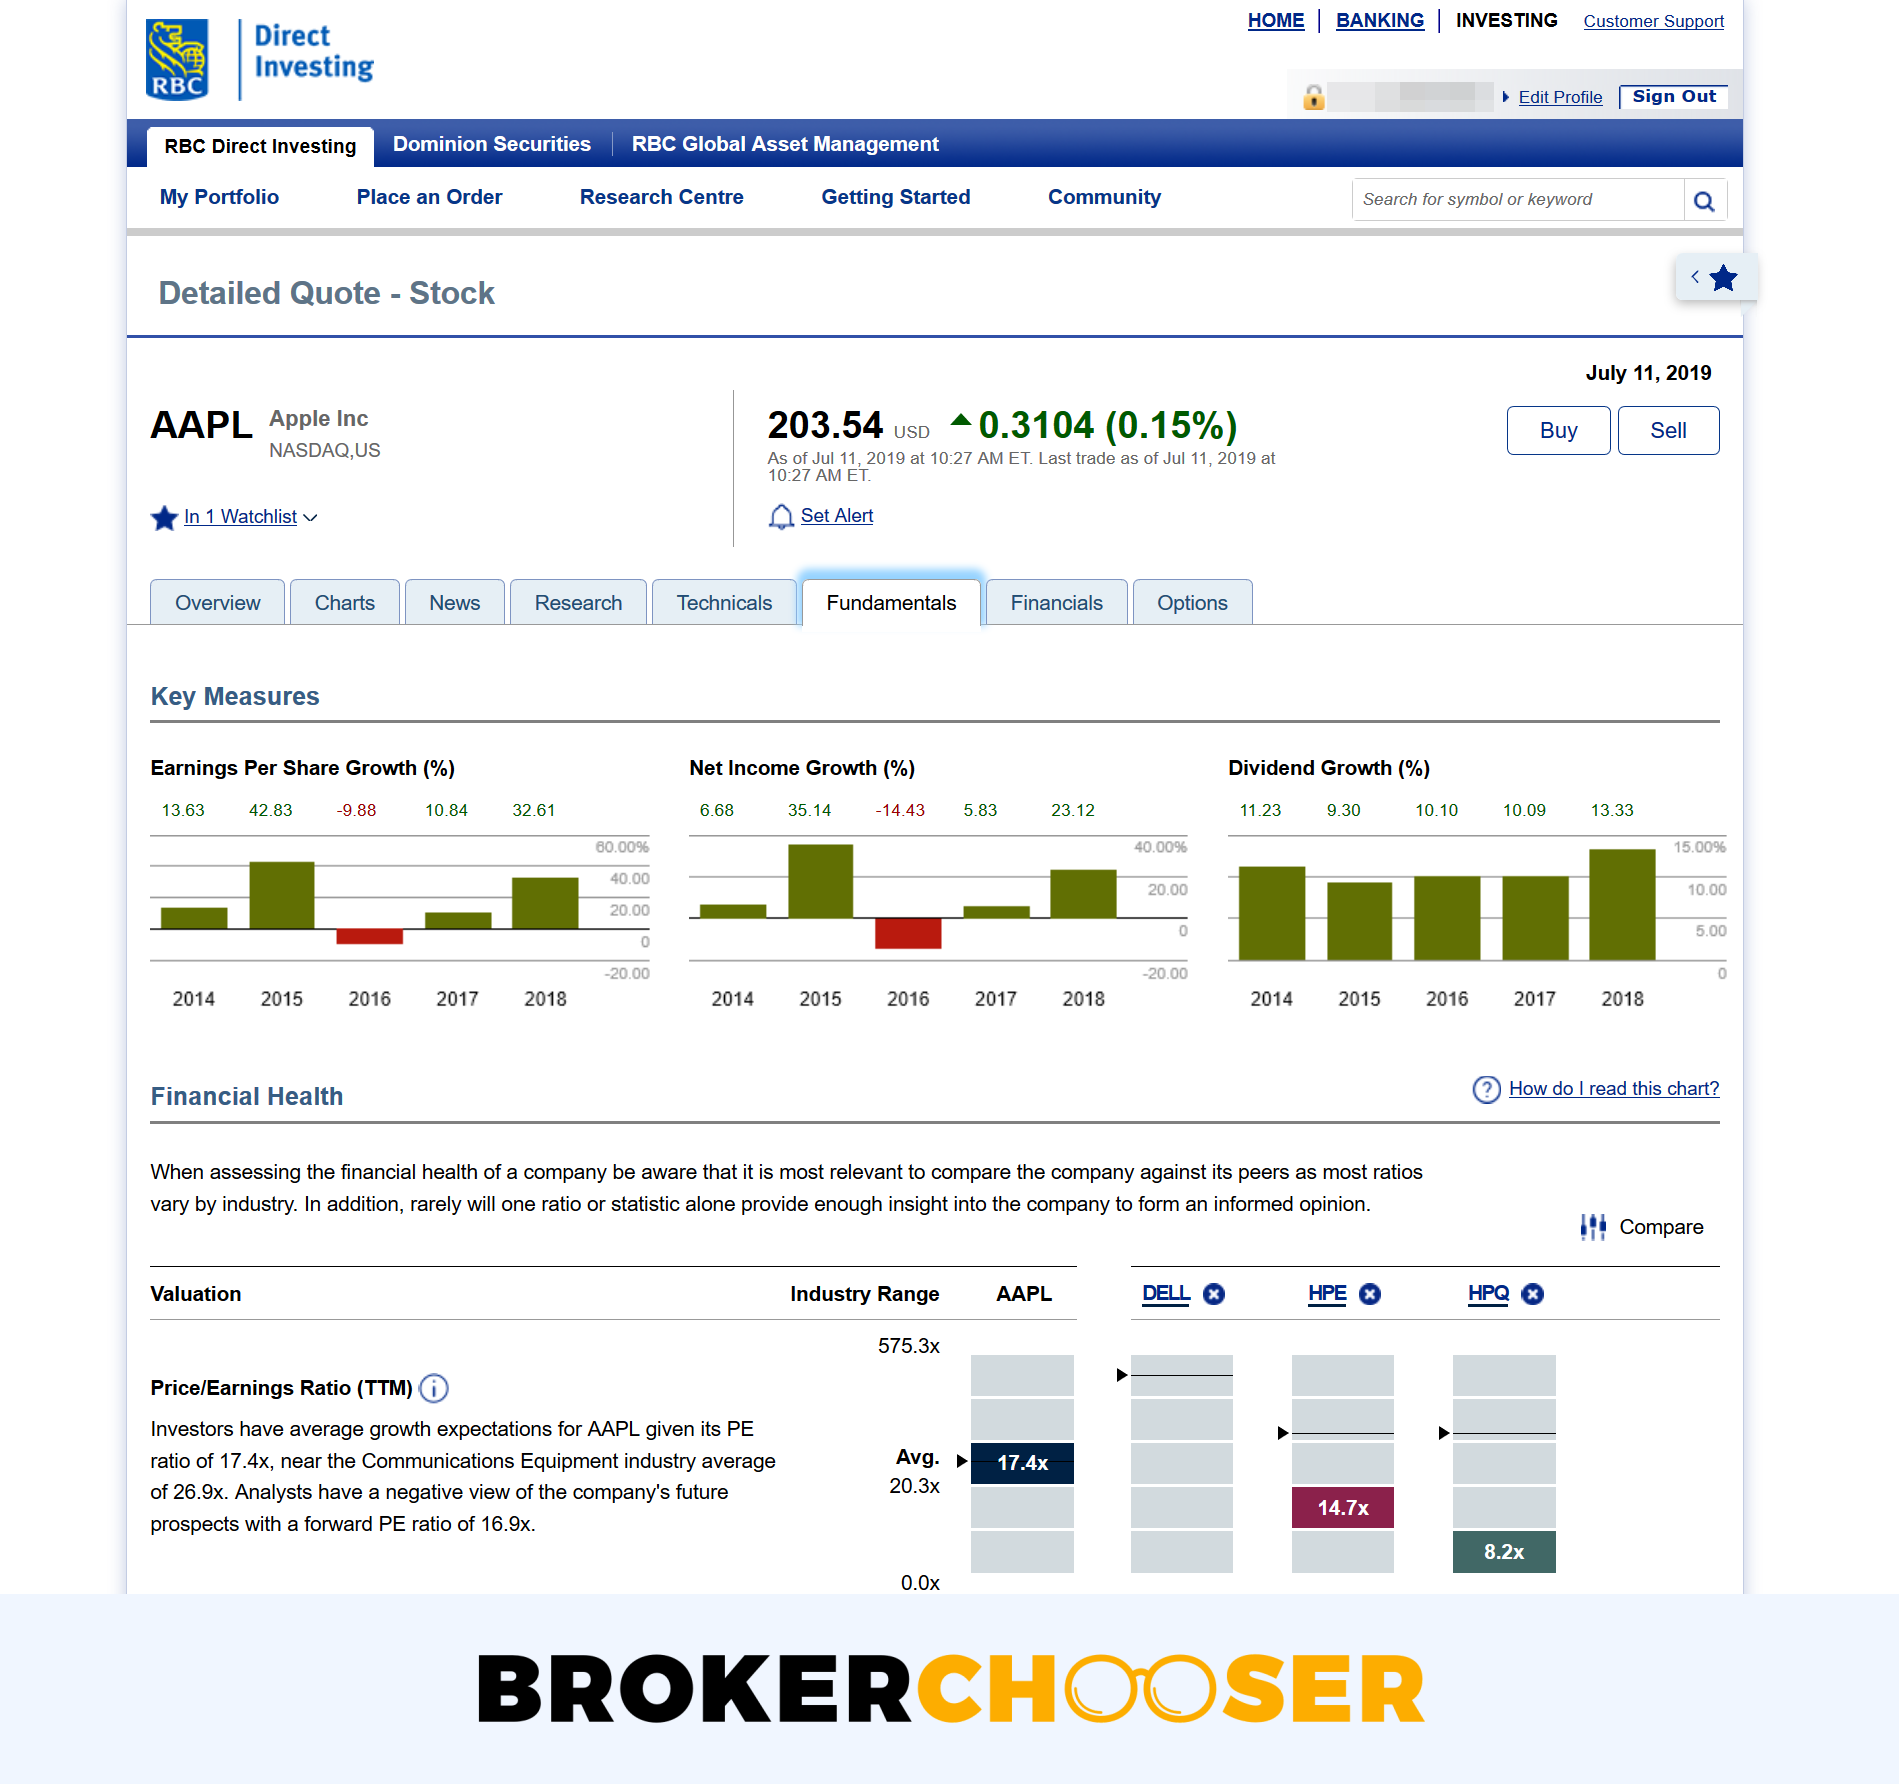 RBC Direct Investing review - Research - Fundamental data